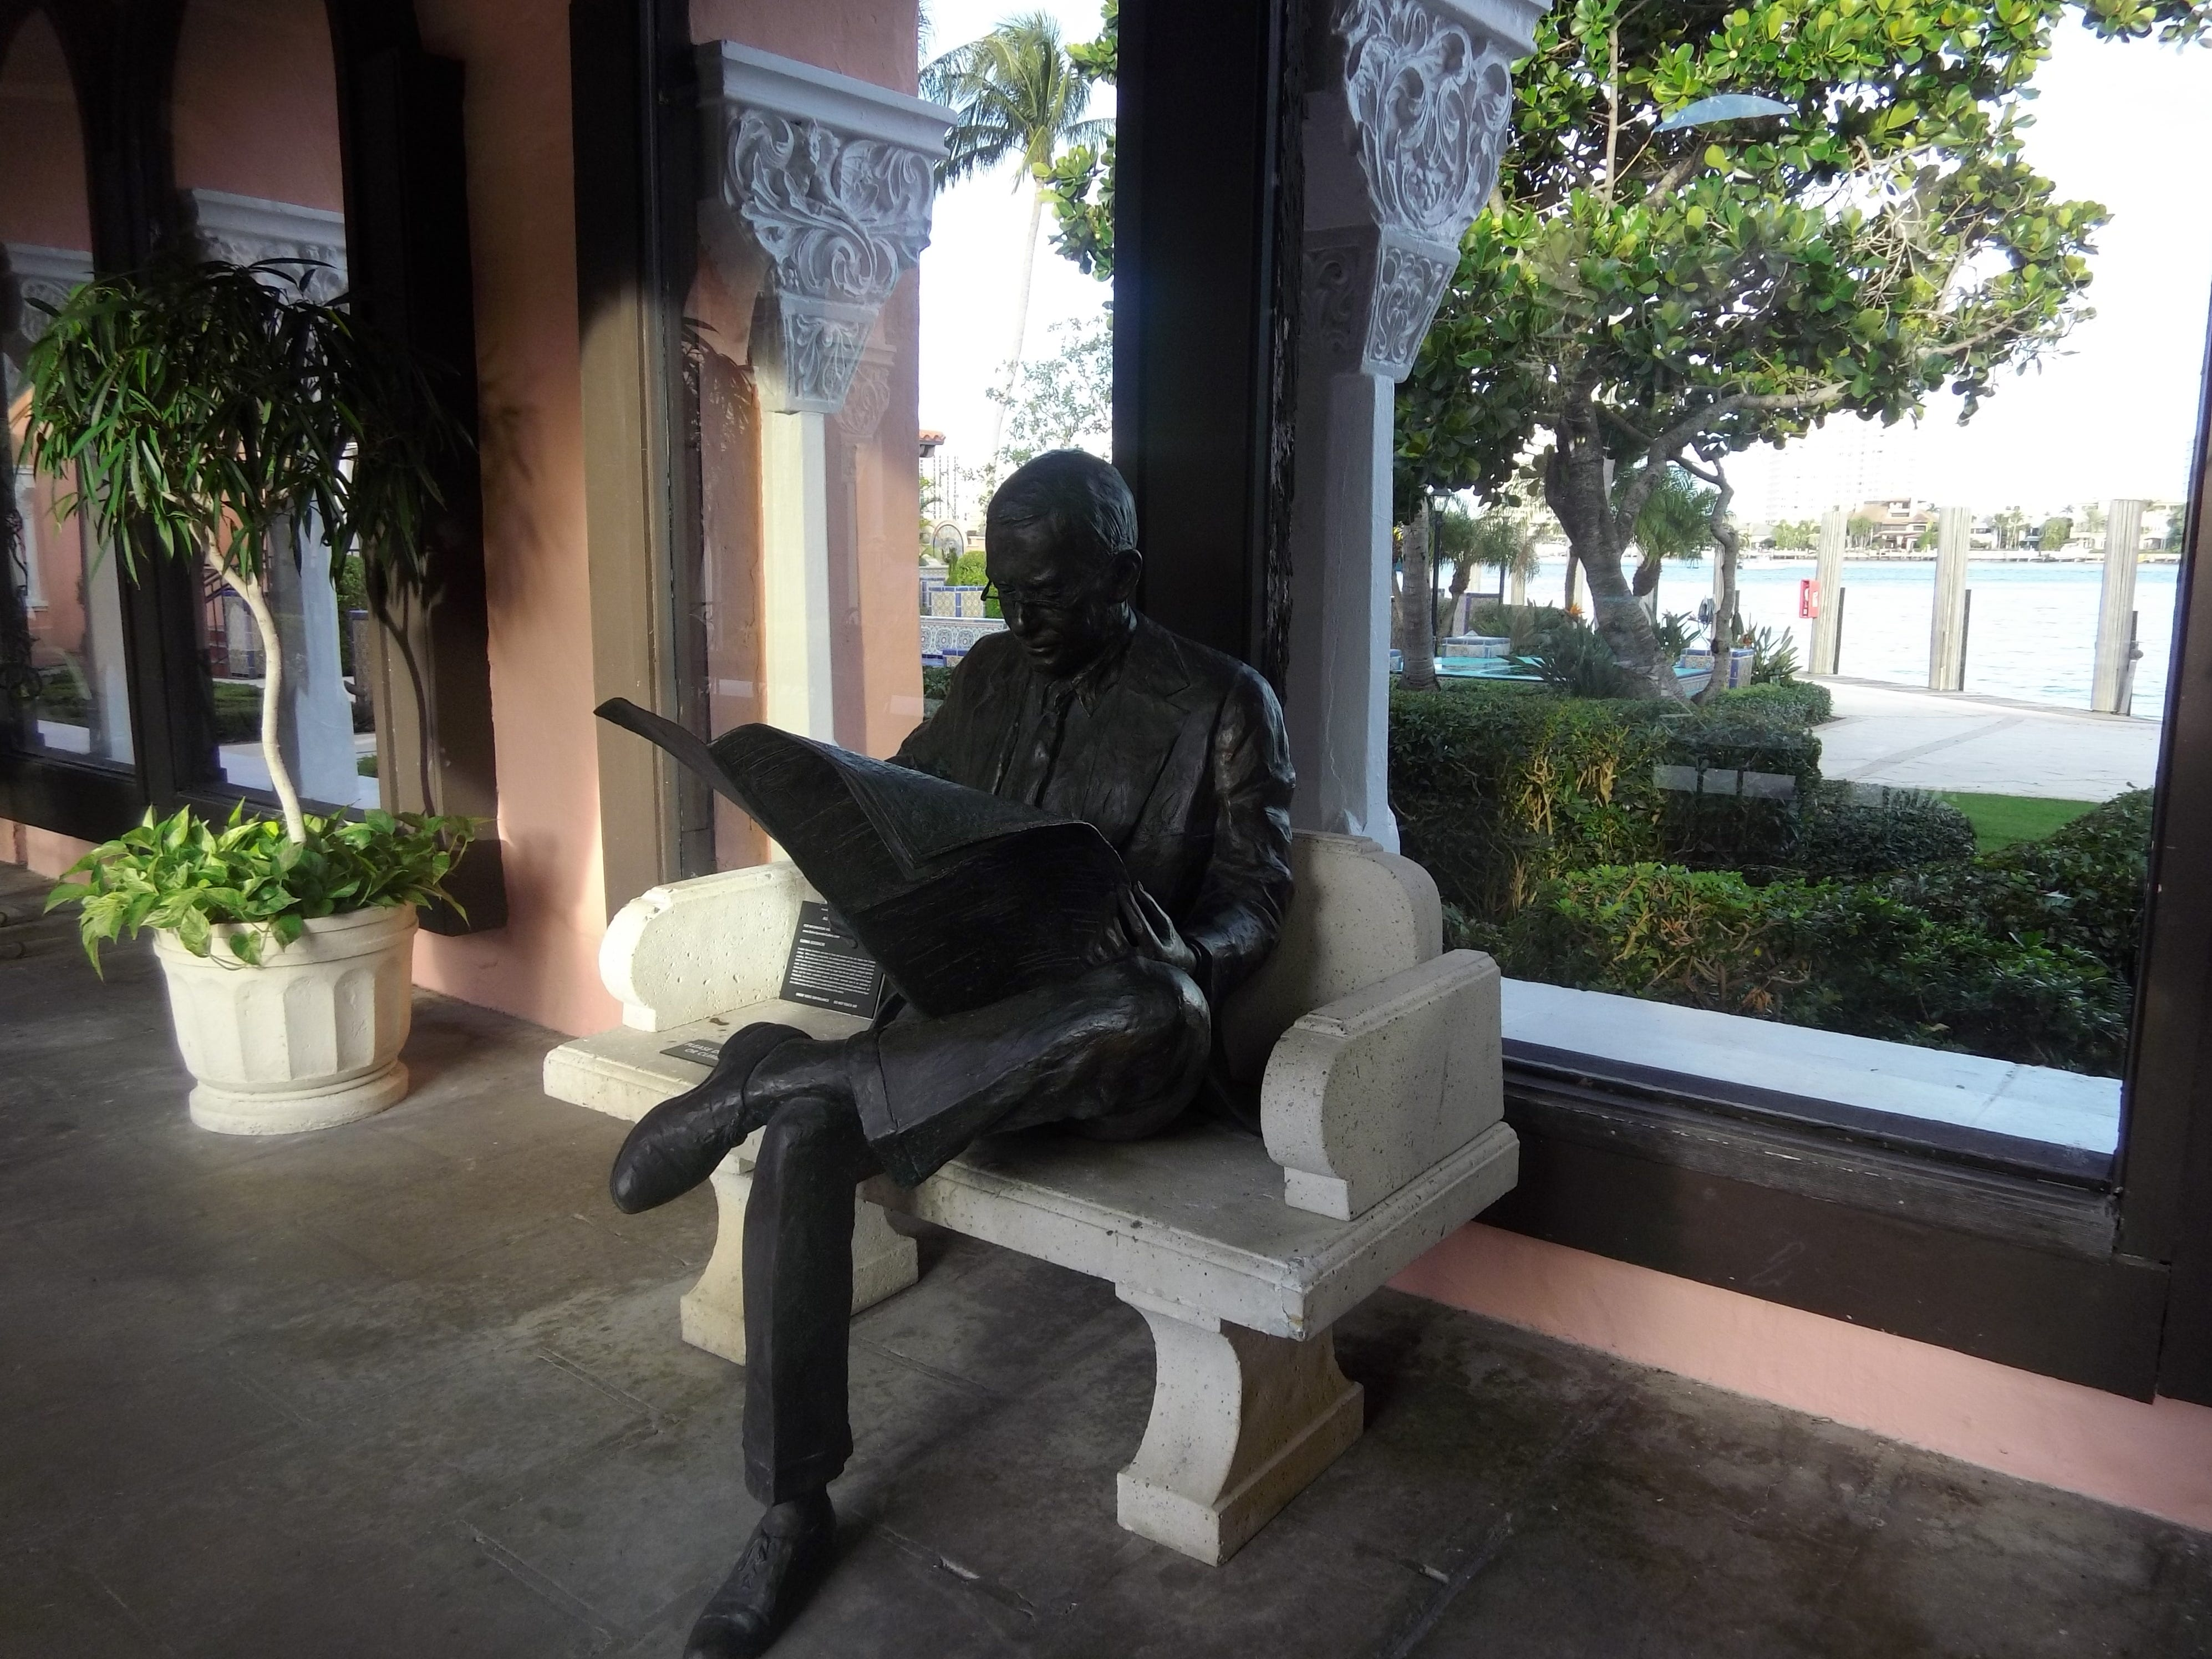 This sculpture, curated by Sponder Gallery, sits in the breezeway between the hotel and The Tower.